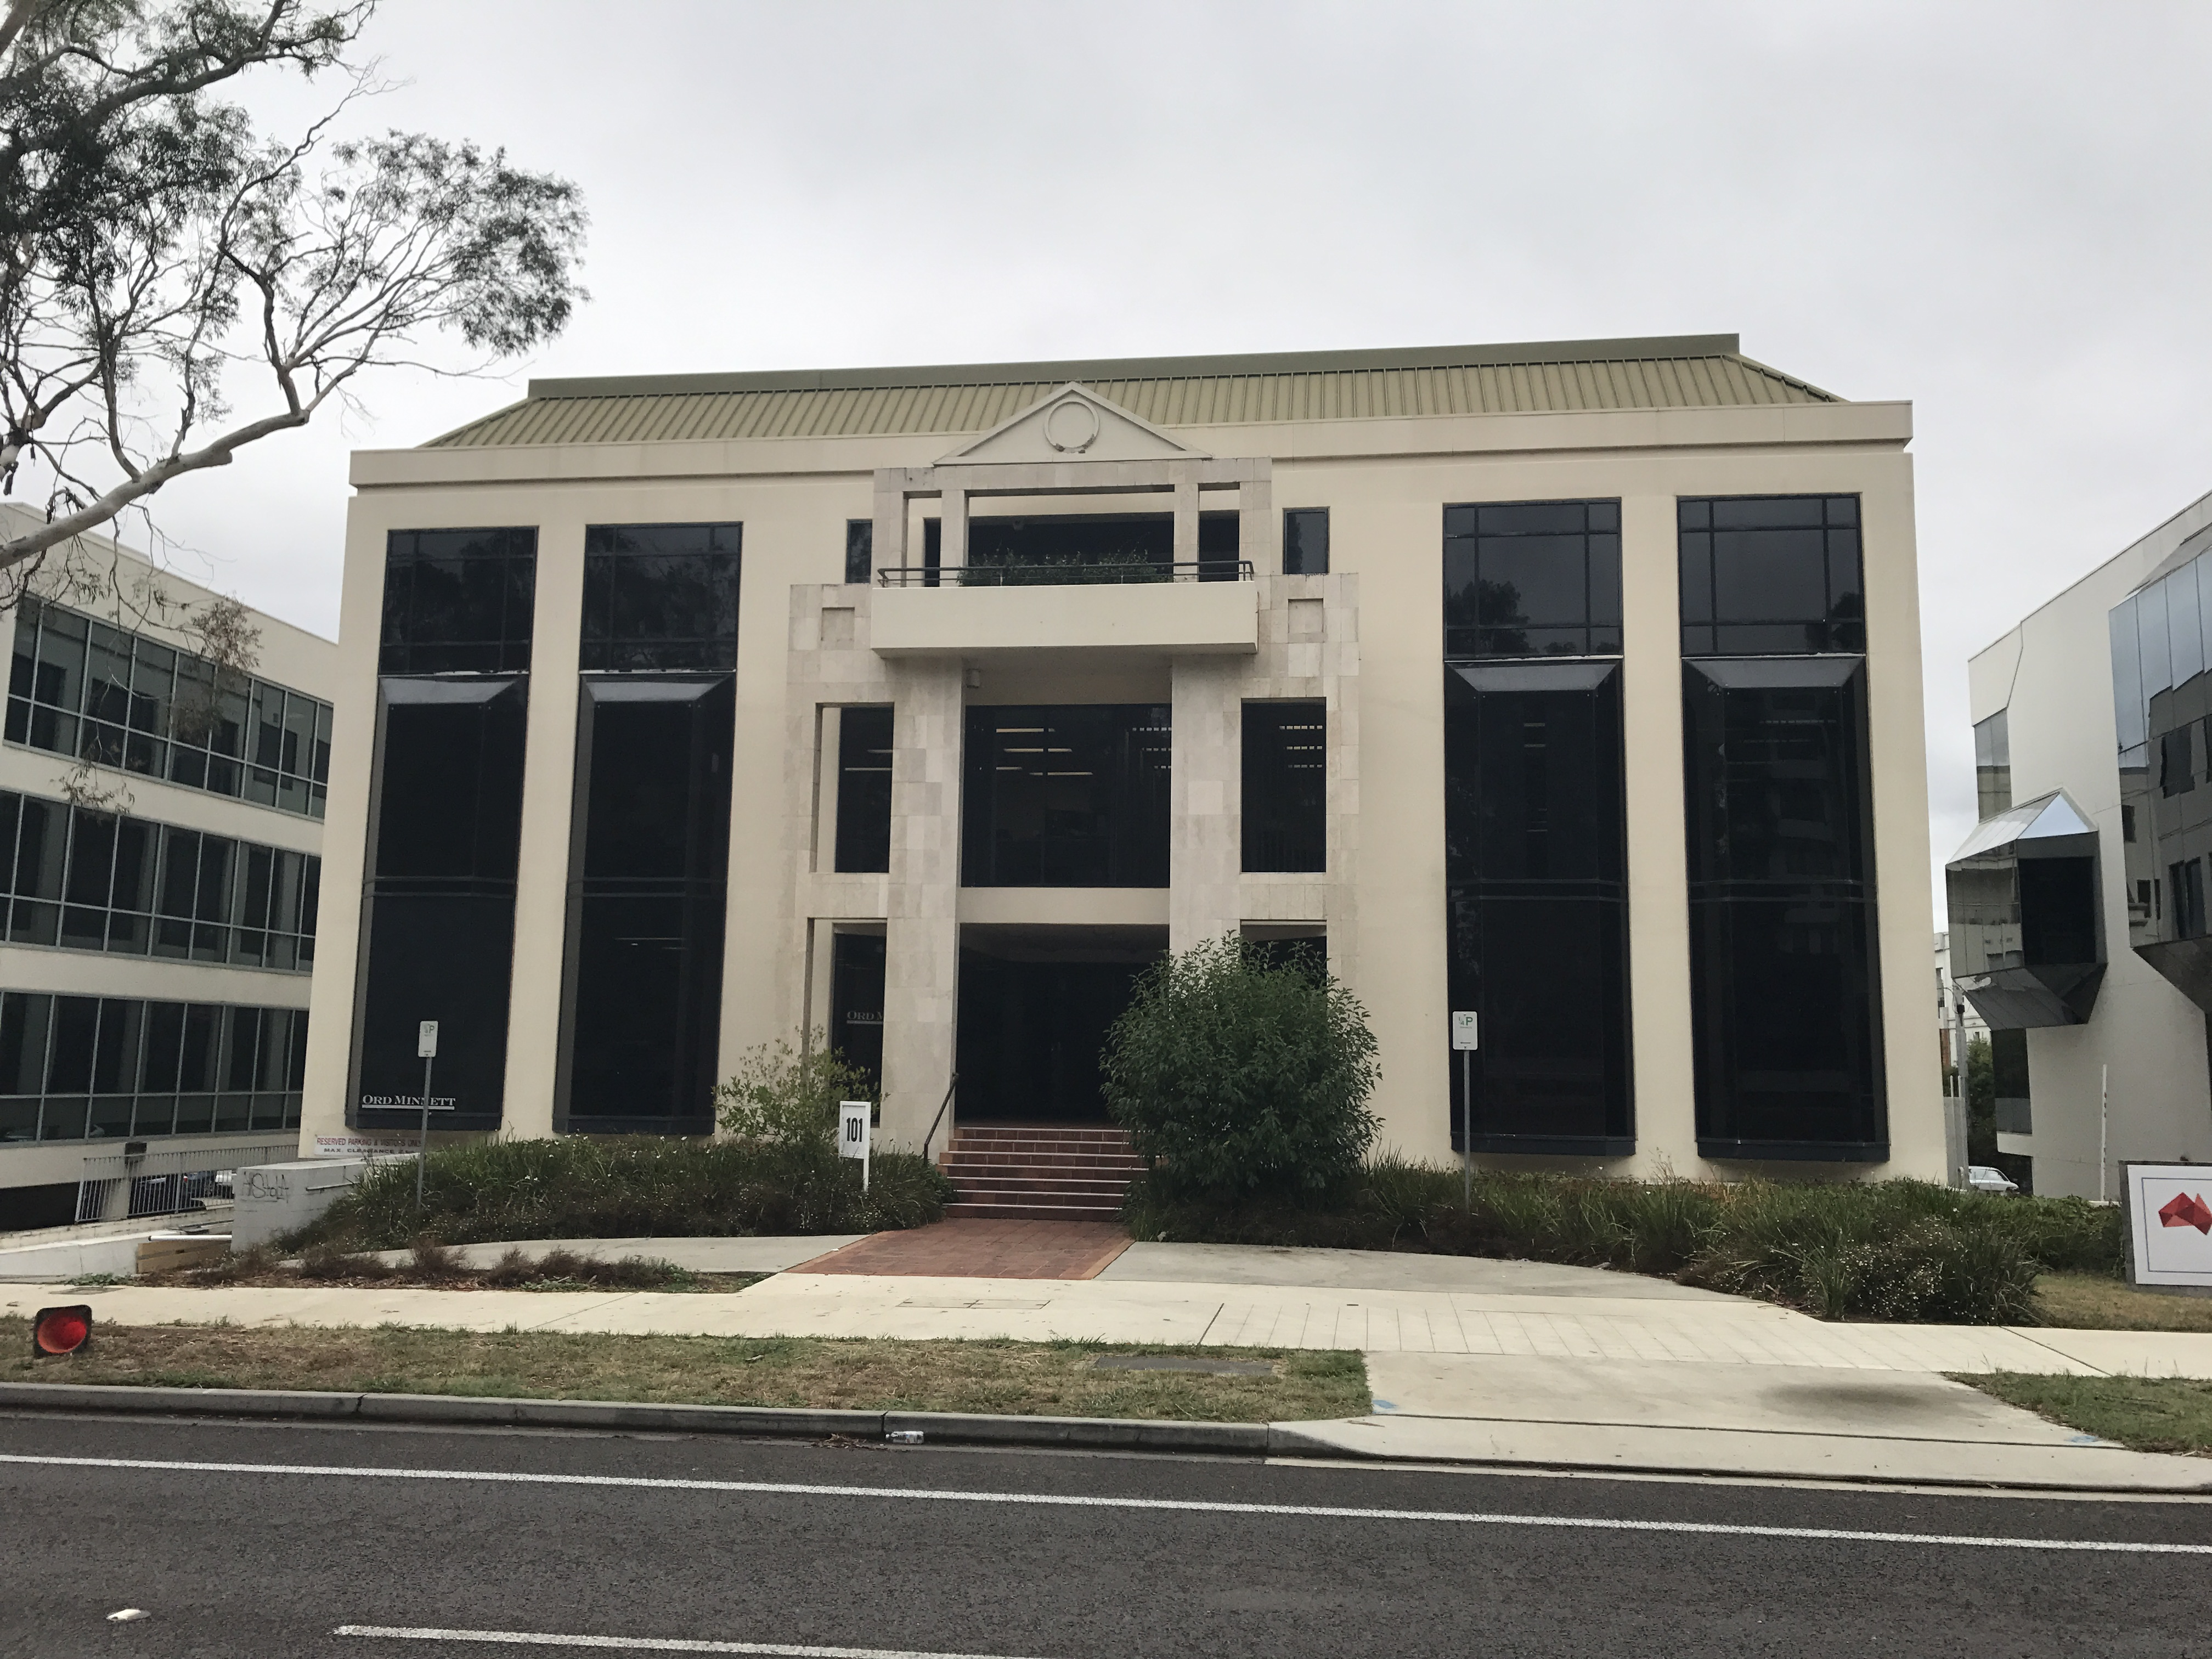 The Canberra regional office has moved